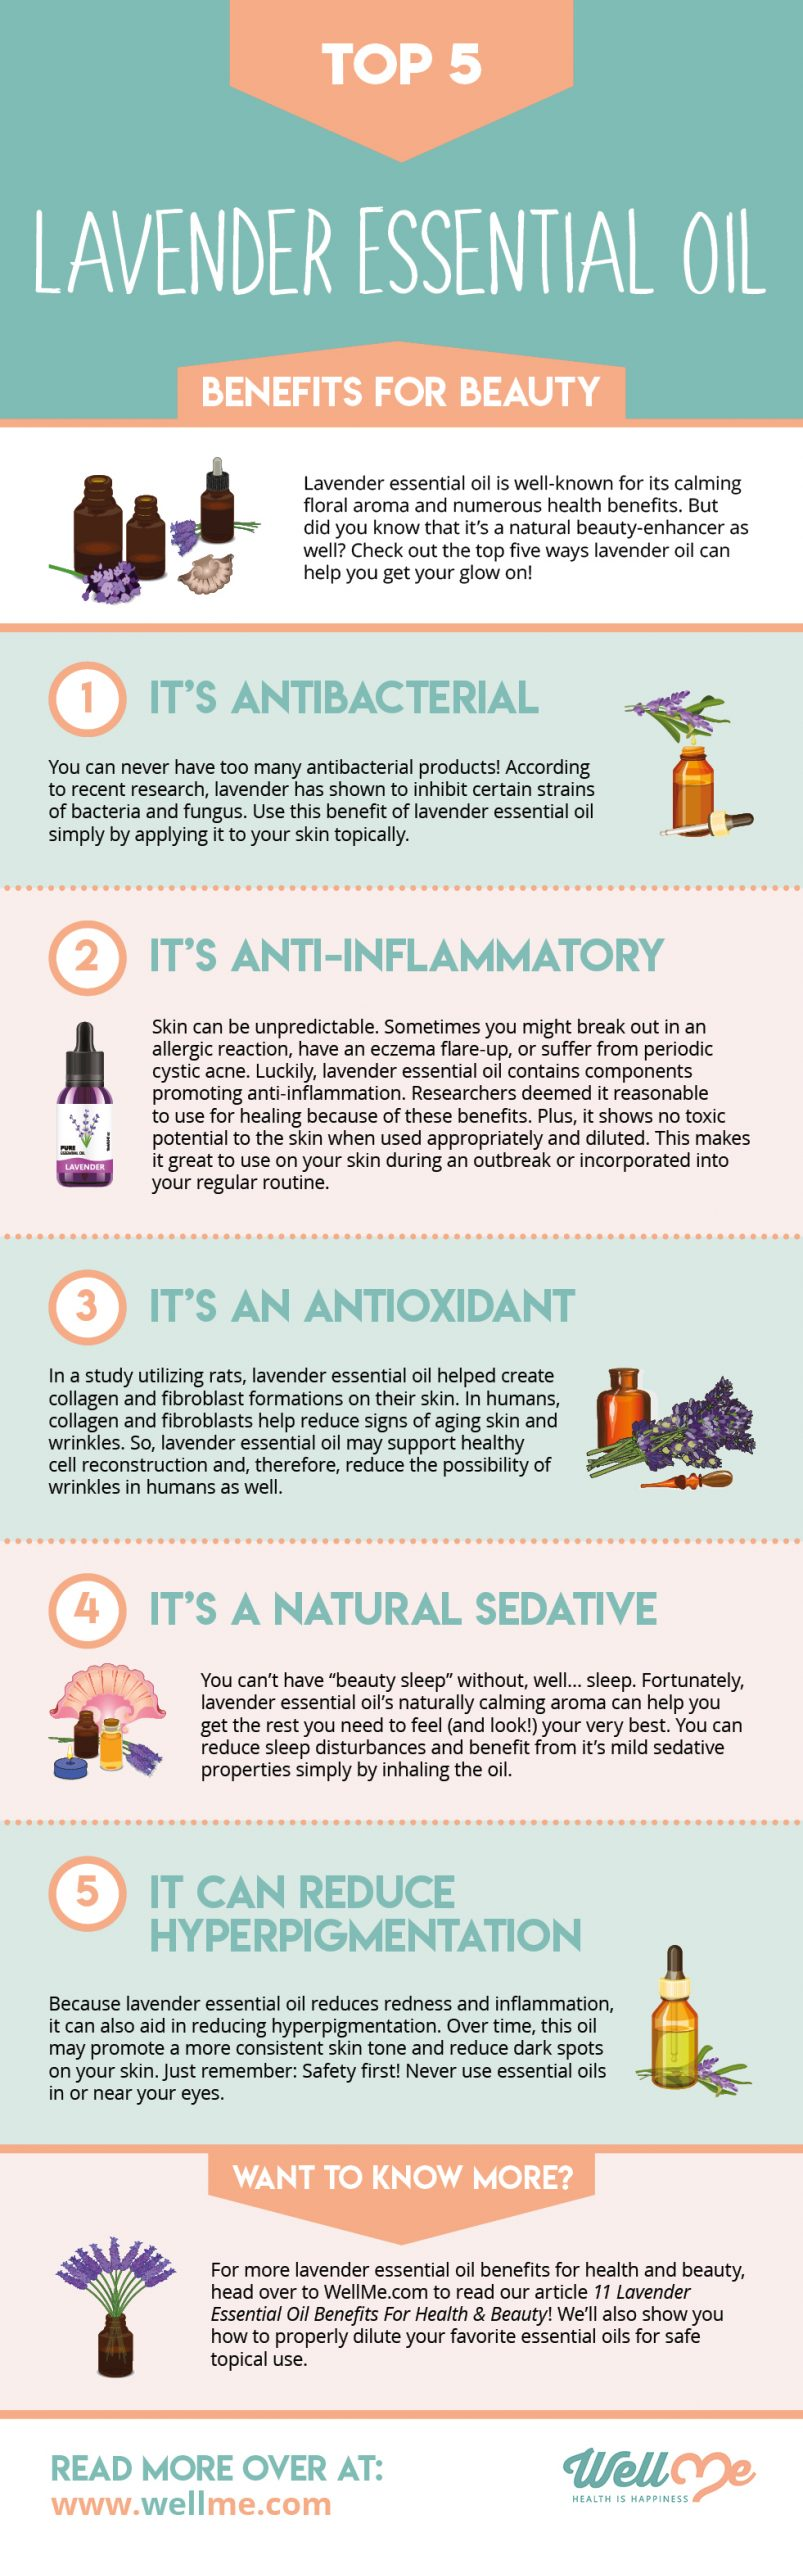 Top 5 Lavender Essential Oil Benefits for Beauty infographic